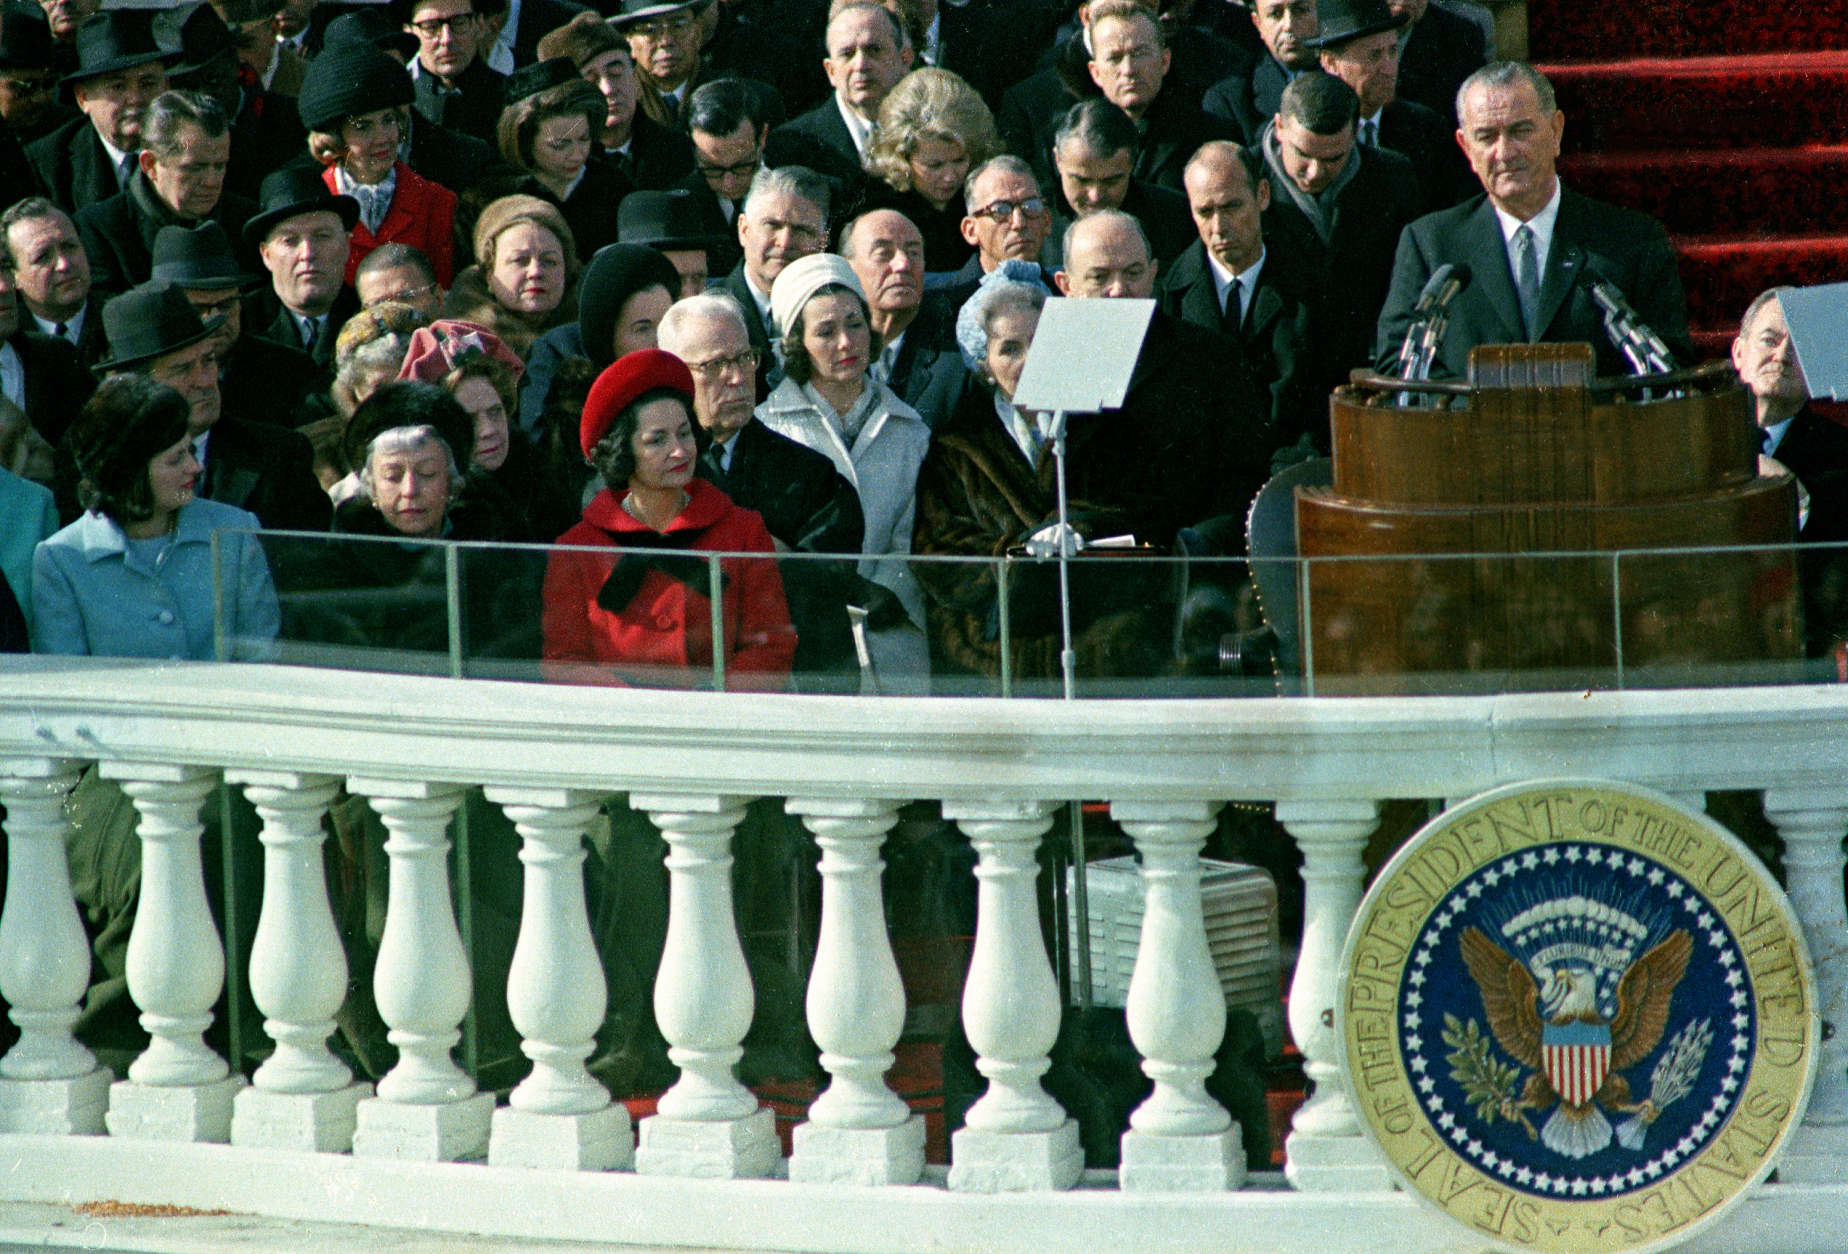 U.S. President Lyndon B. Johnson delivers his inaugural address during inauguration ceremonies on the east portico of the Capitol building in Washington, D.C., Jan. 20, 1965.  Johnson was sworn in as the 36th president of the United States.  Visible in front row, left, is first lady Lady Bird Johnson, who held the bible as her husband took the oath of office, beginning a new tradition.  (AP Photo)